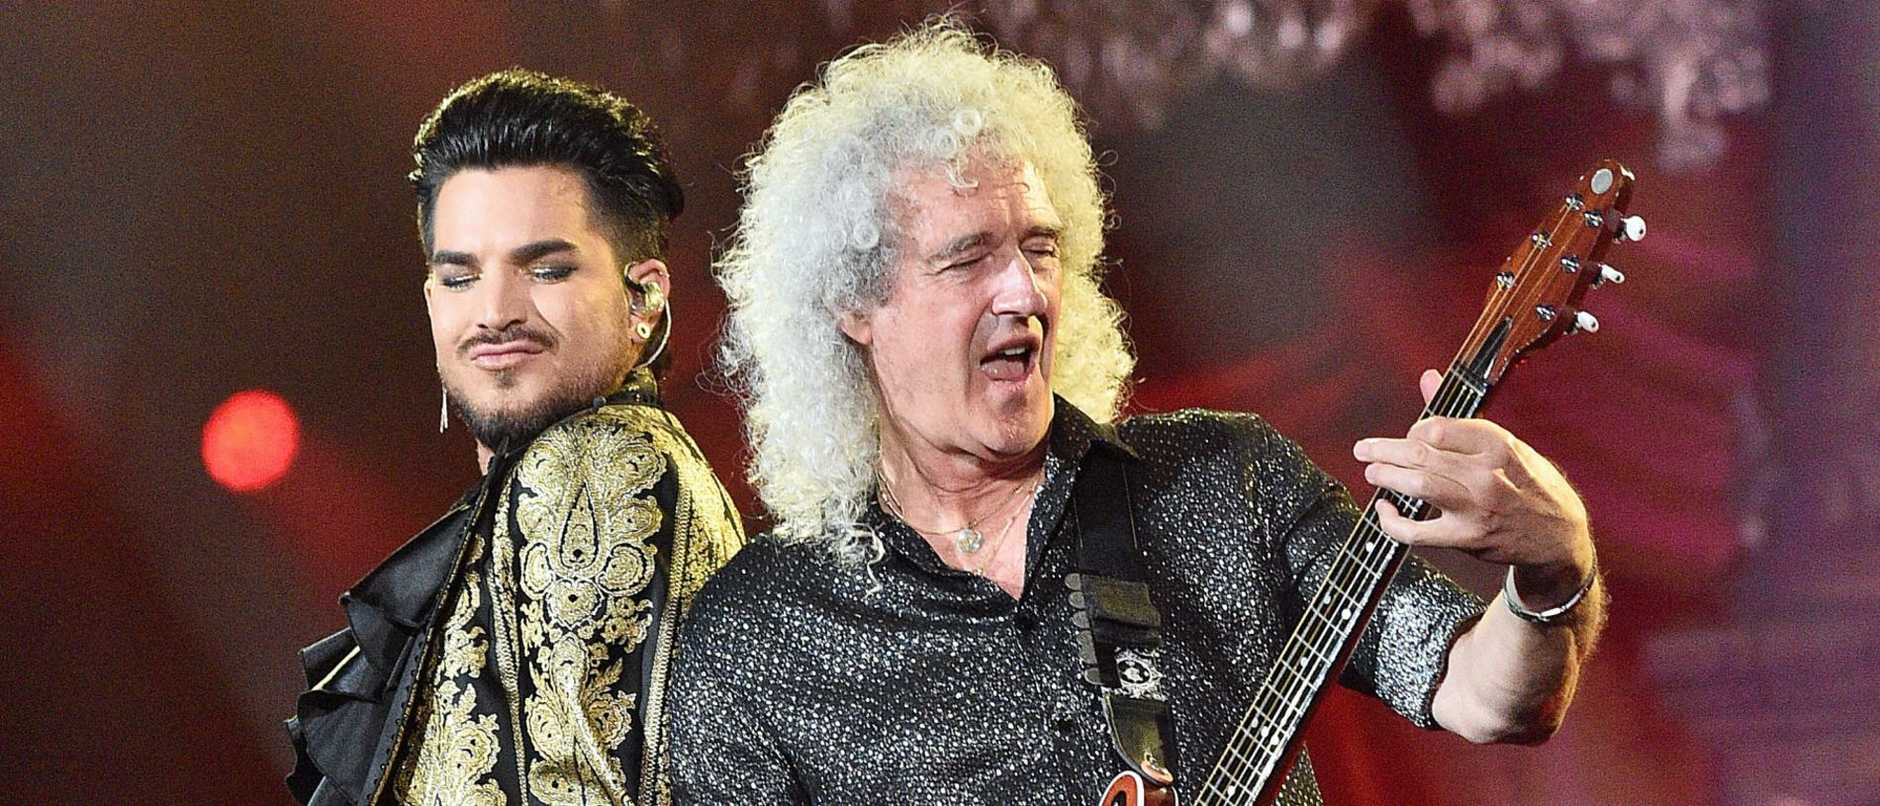 The pulling power of Queen and Adam Lambert has fuelled interest from international broadcasters in taking a feed of the Fire Fight Australia concert.